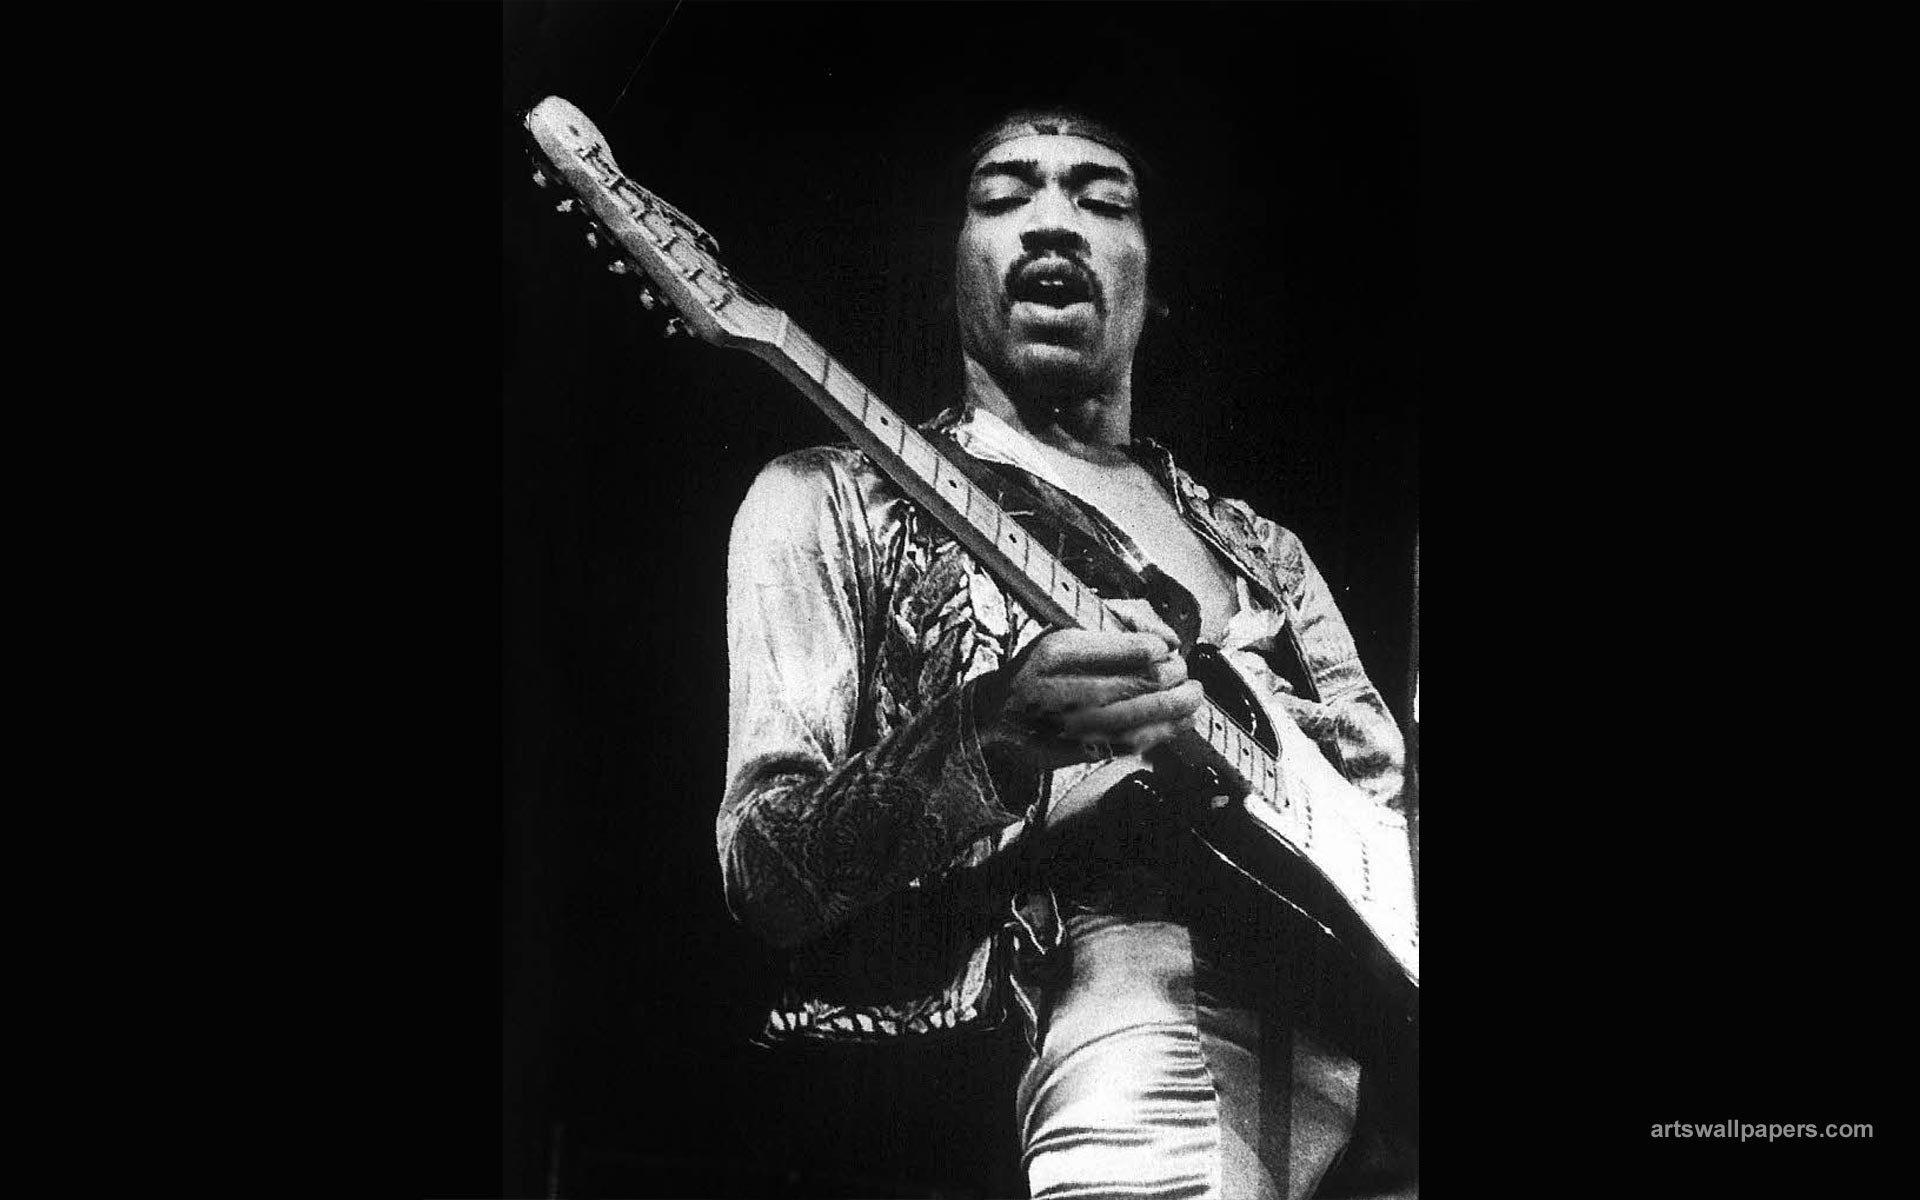 jimi hendrix why he desrves world Two hours of jimi hendrix on world cafe in this special edition of world café, david dye hosts the jimi you never knew, a two-hour episode showcasing music that has surfaced over the past few years.